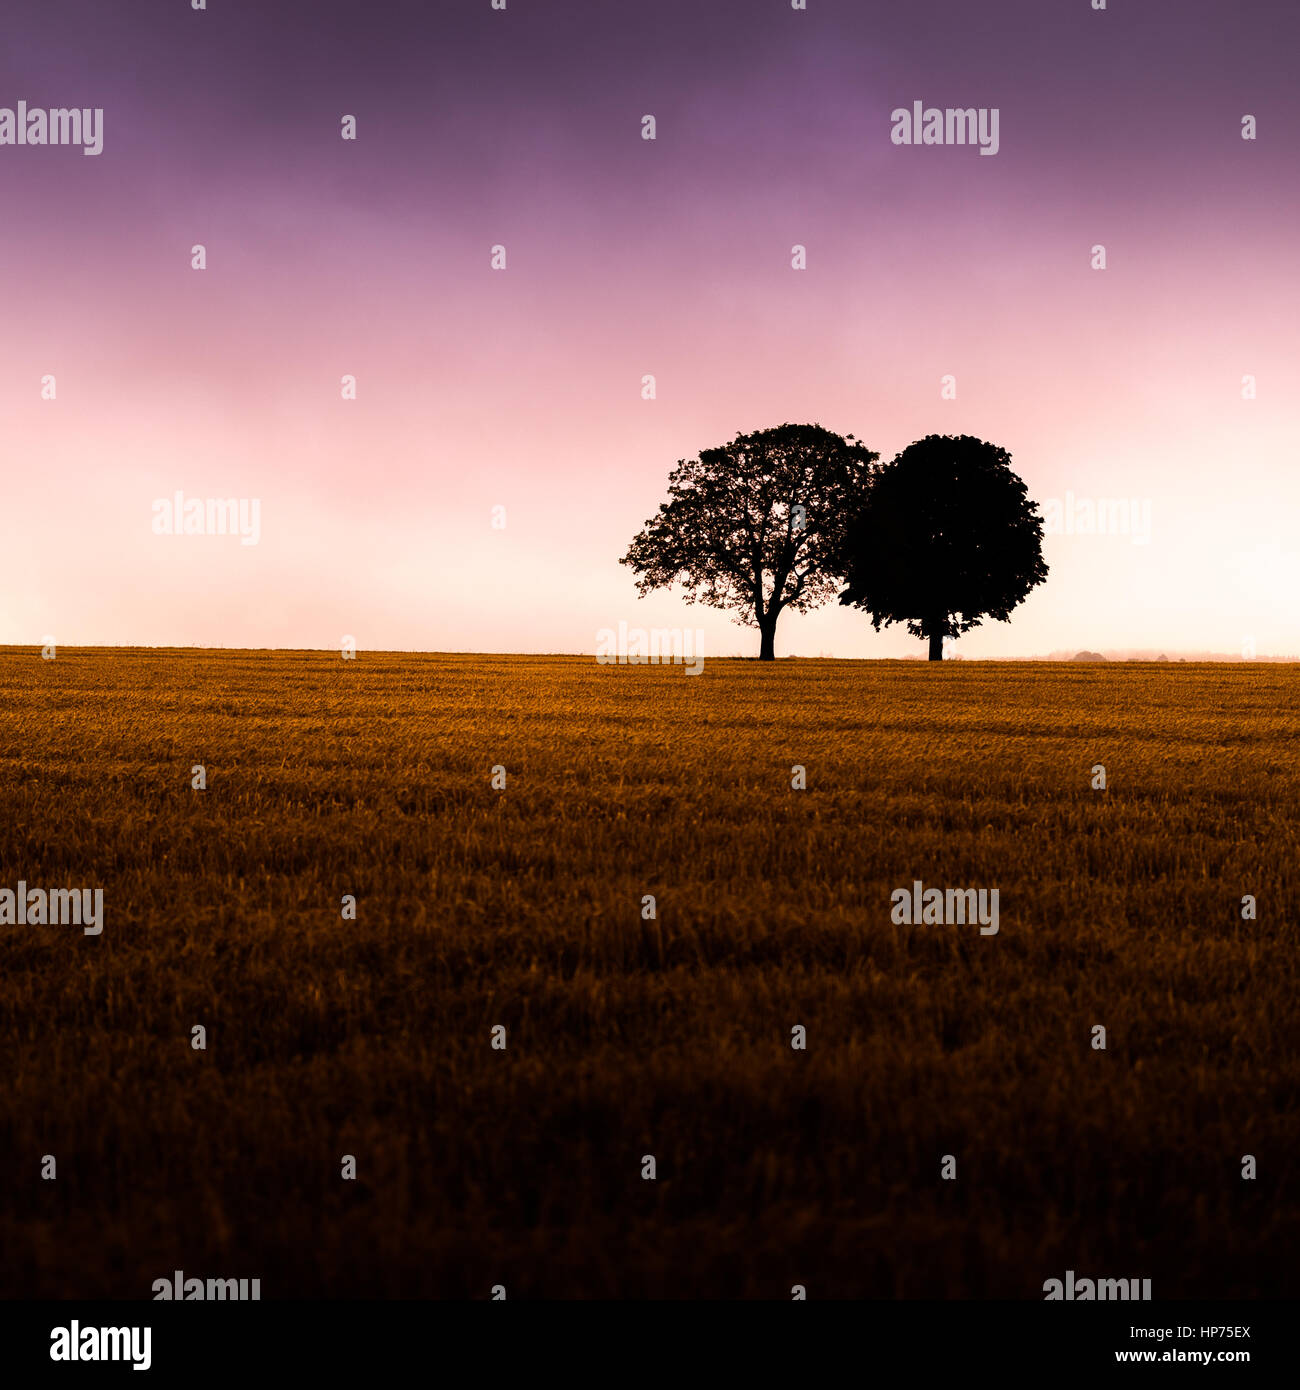 Two Trees At The Horizon Of A Corn Field - Stock Image